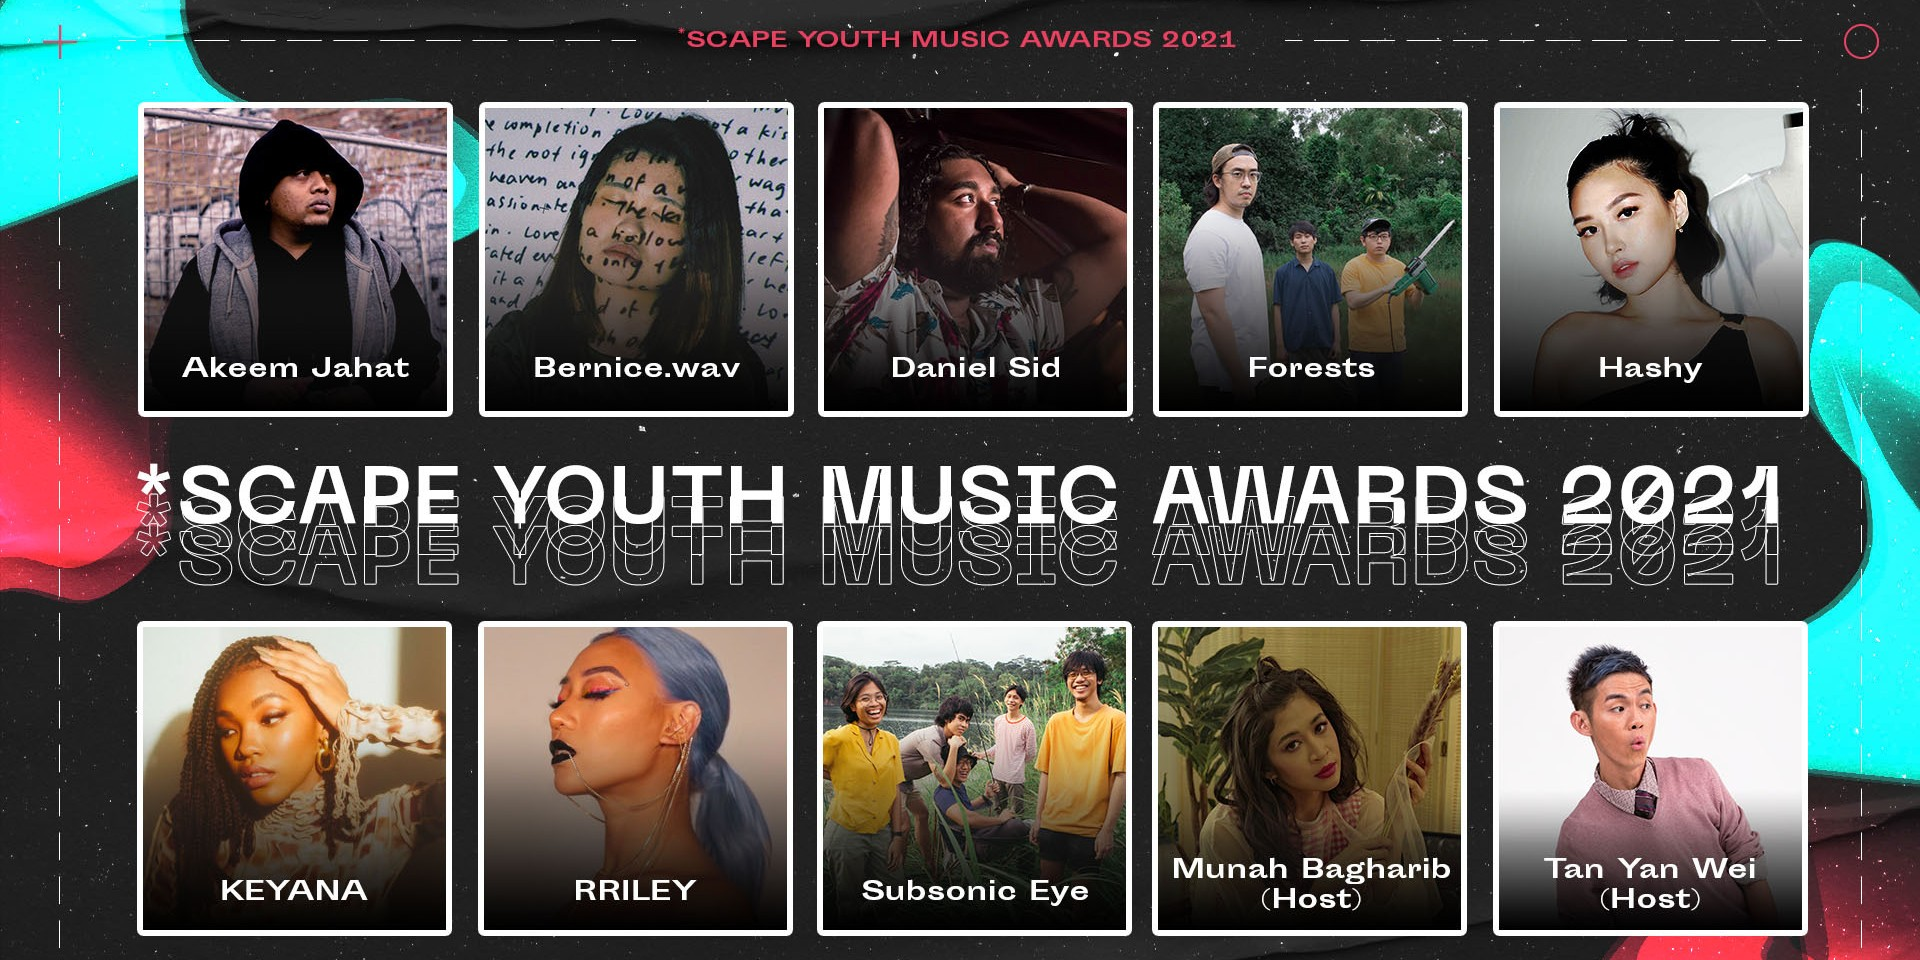 The countdown to *SCAPE Youth Music Awards 2021 has begun - here's everything you need to know about it